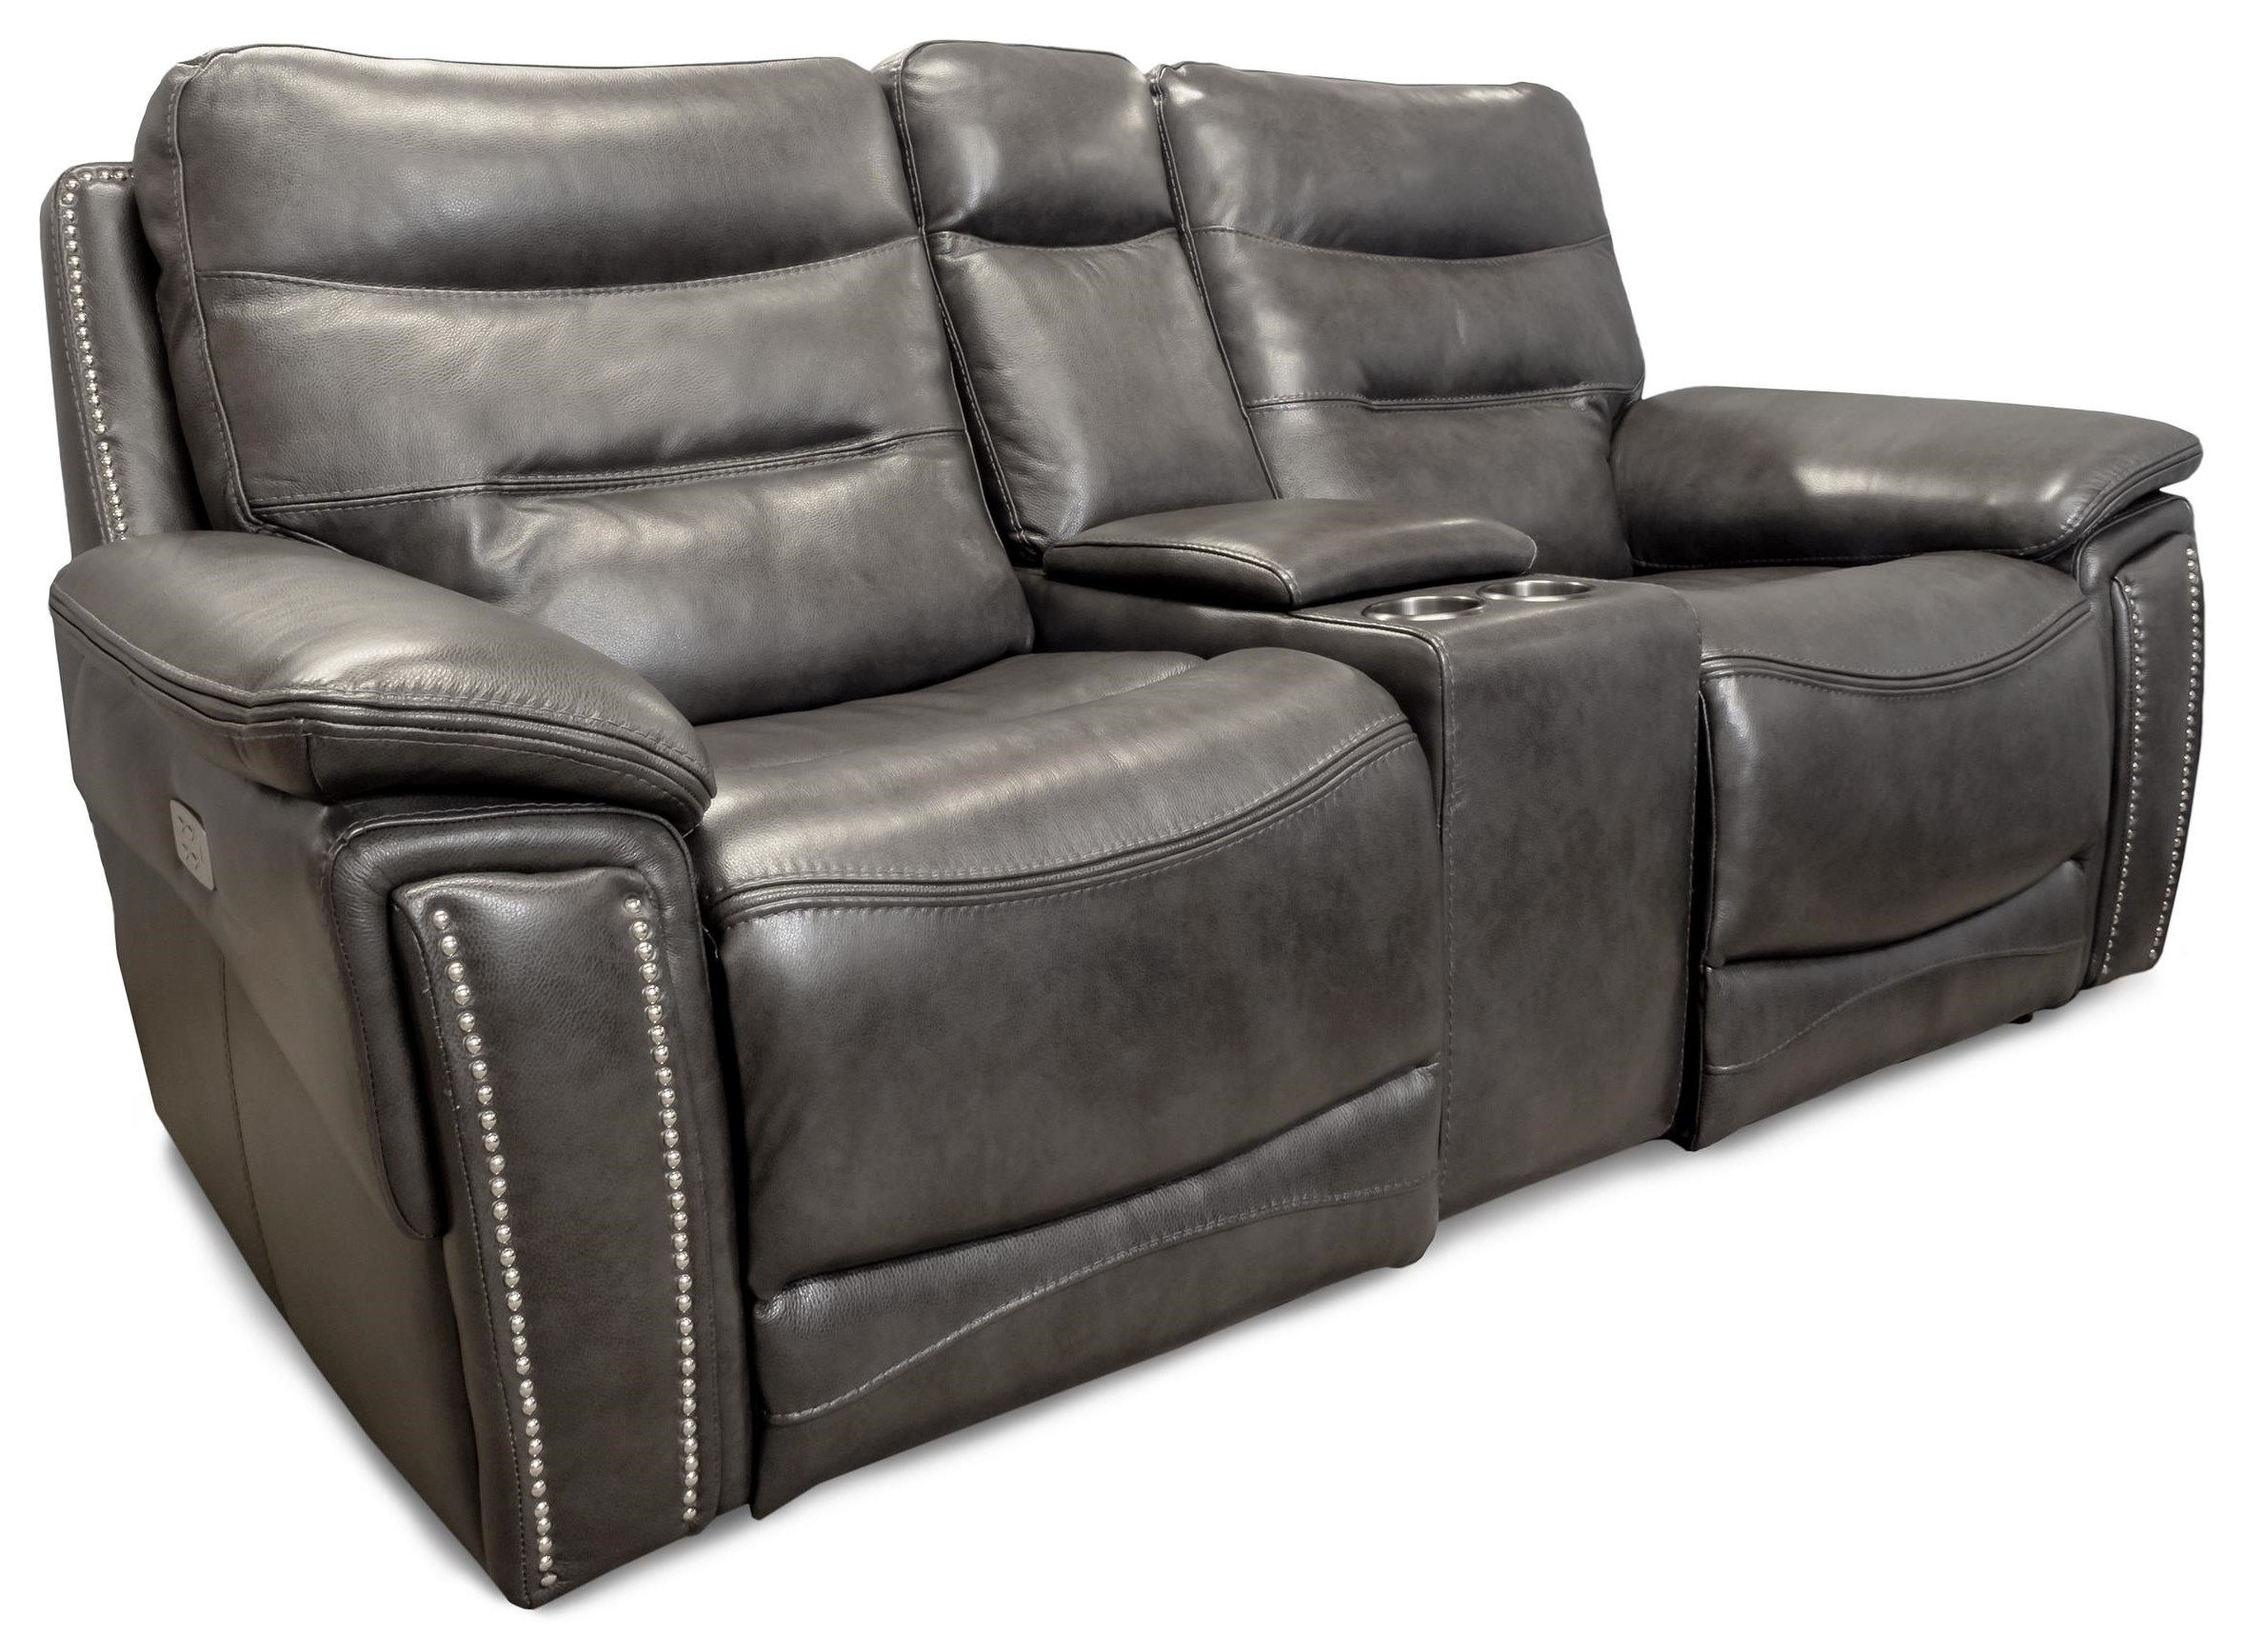 City Lights Power Headrest Console Loveseat by Design to Recline at Rotmans